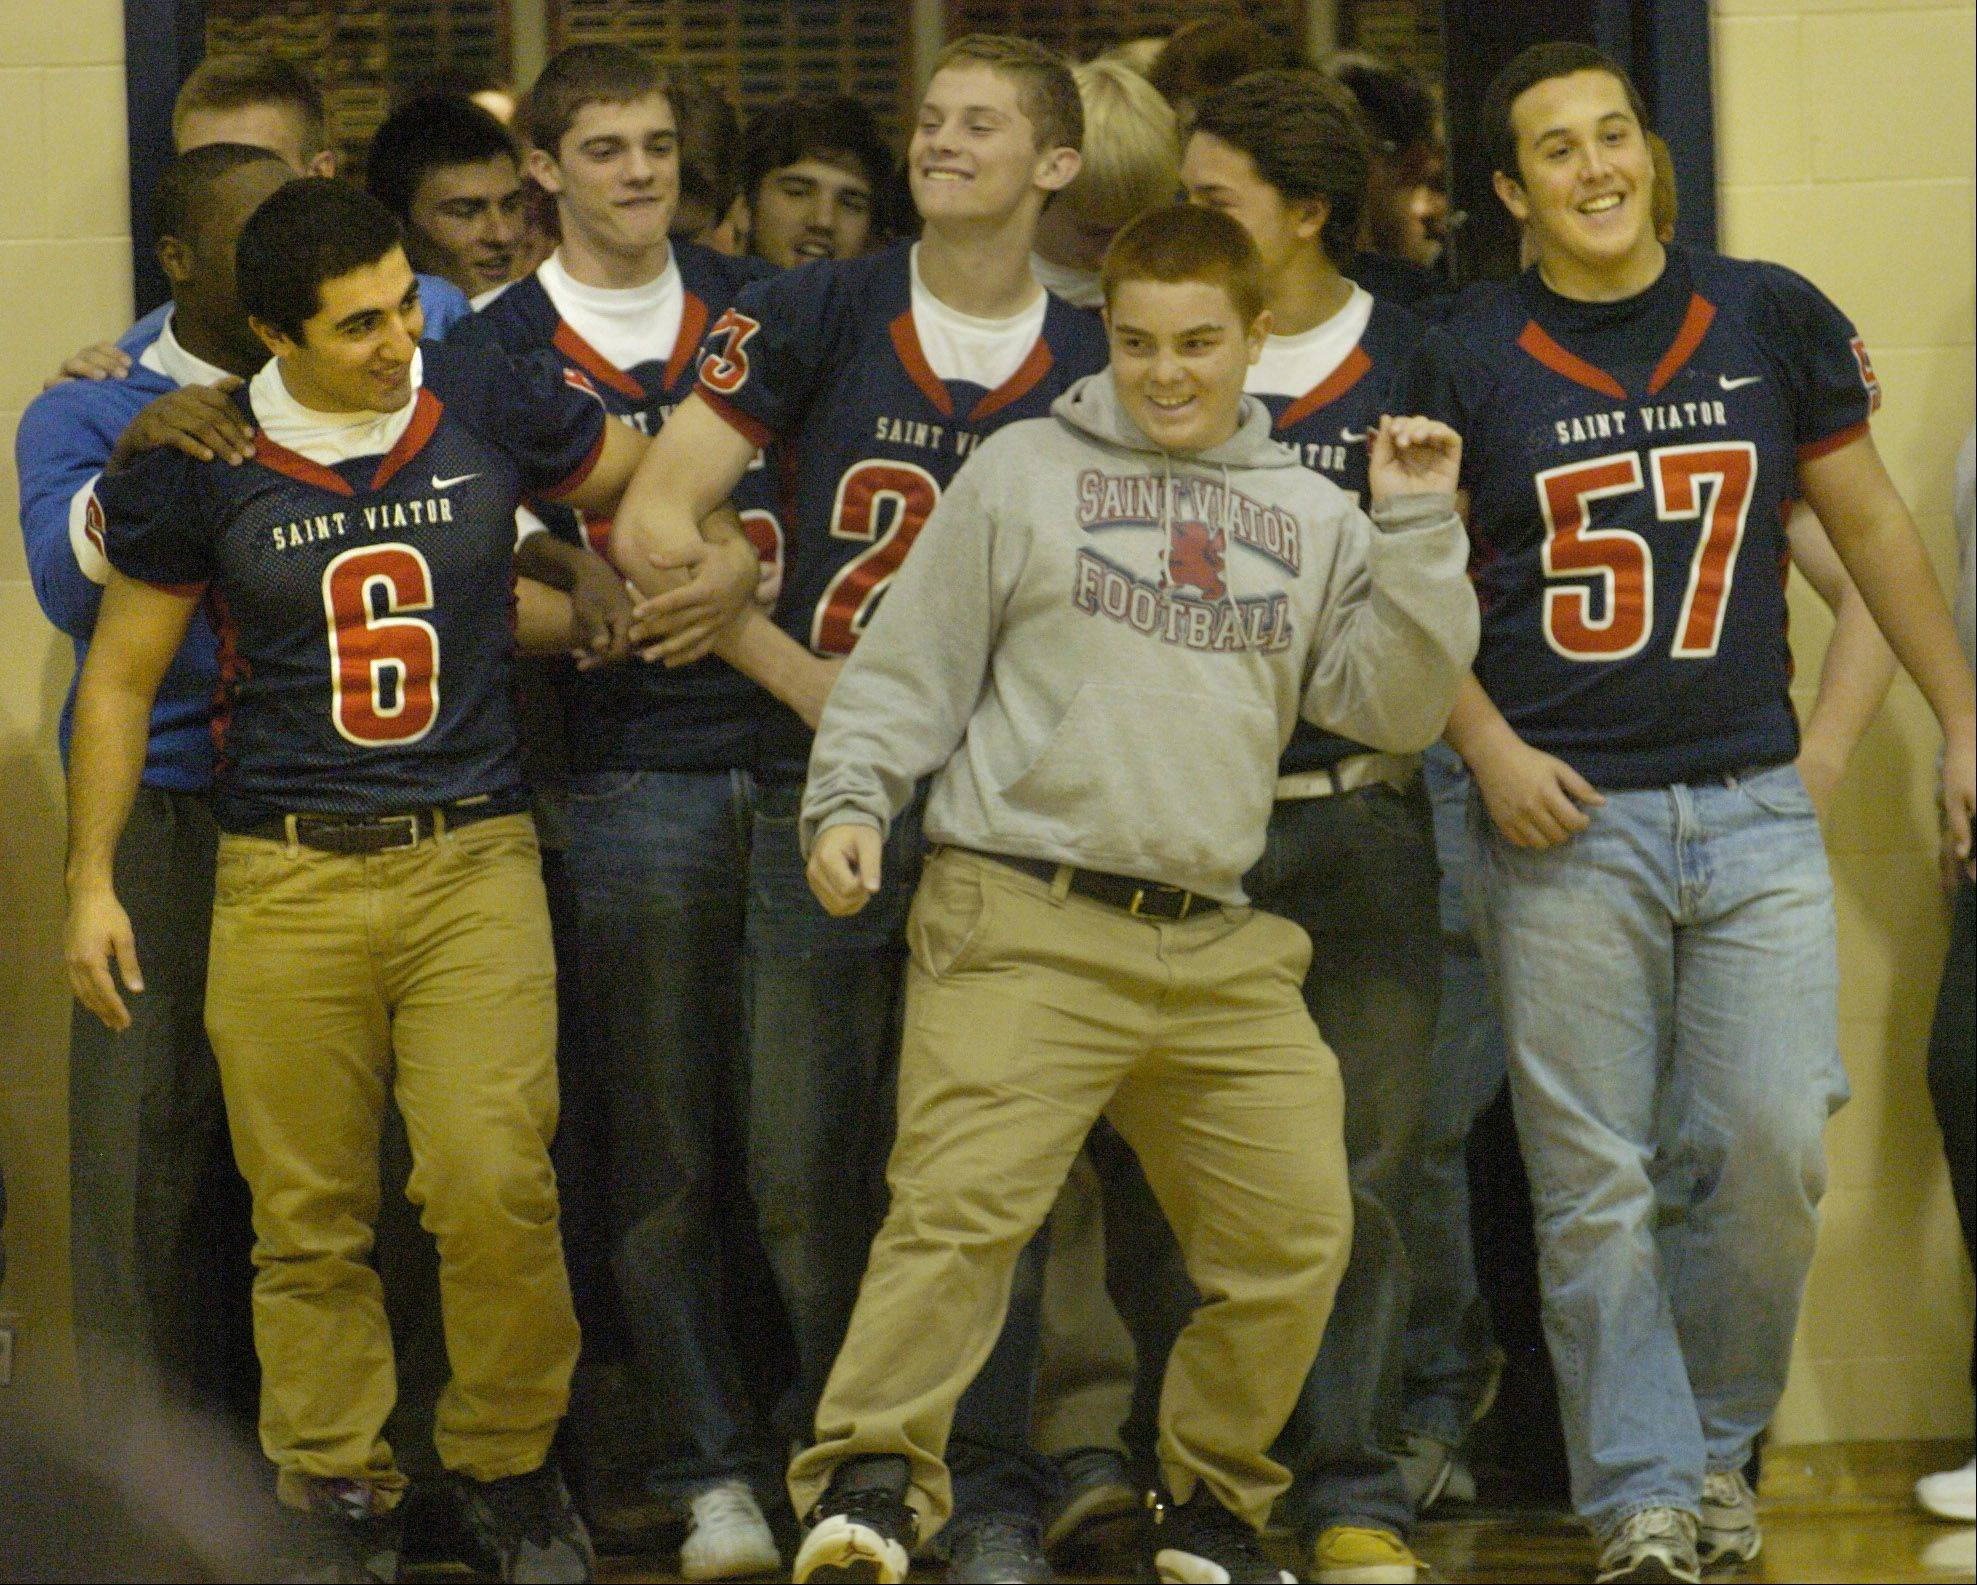 The varsity football team is announced during St. Viator's Homecoming Pep Rally.